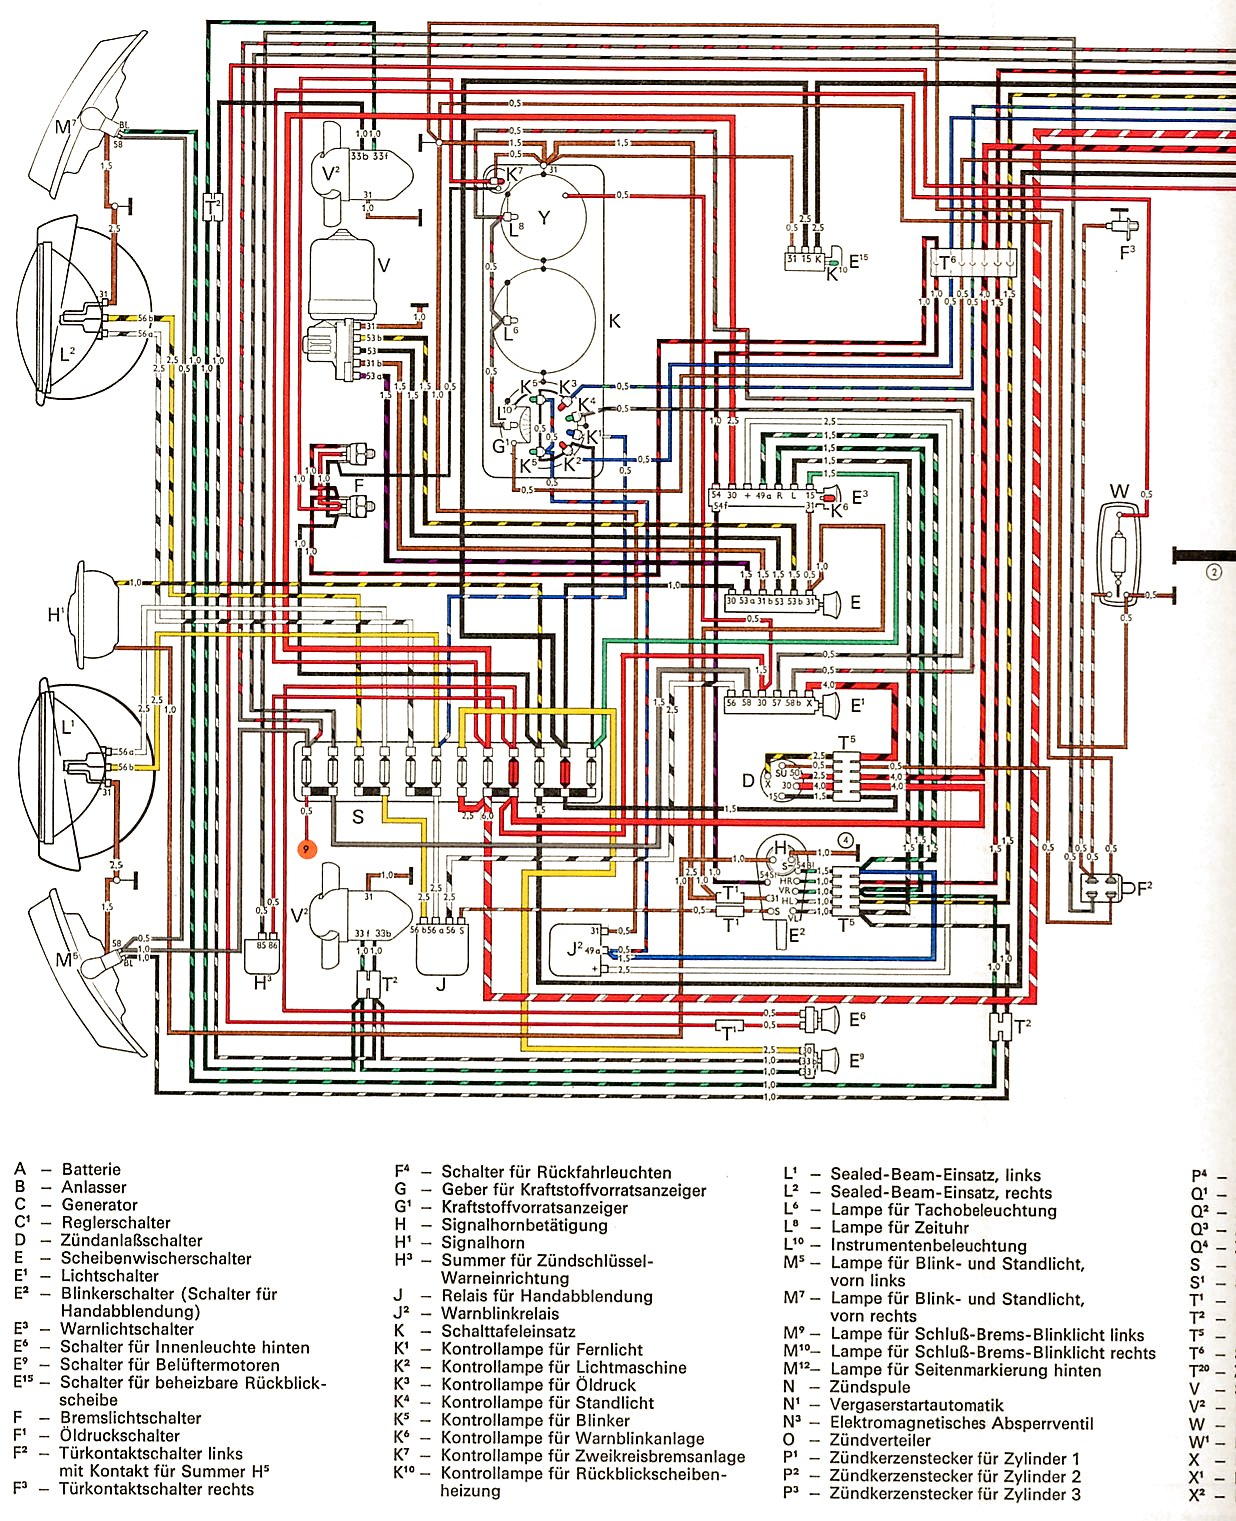 Schema Elettrico Golf 7 : Vintagebus.com vw bus and other wiring diagrams